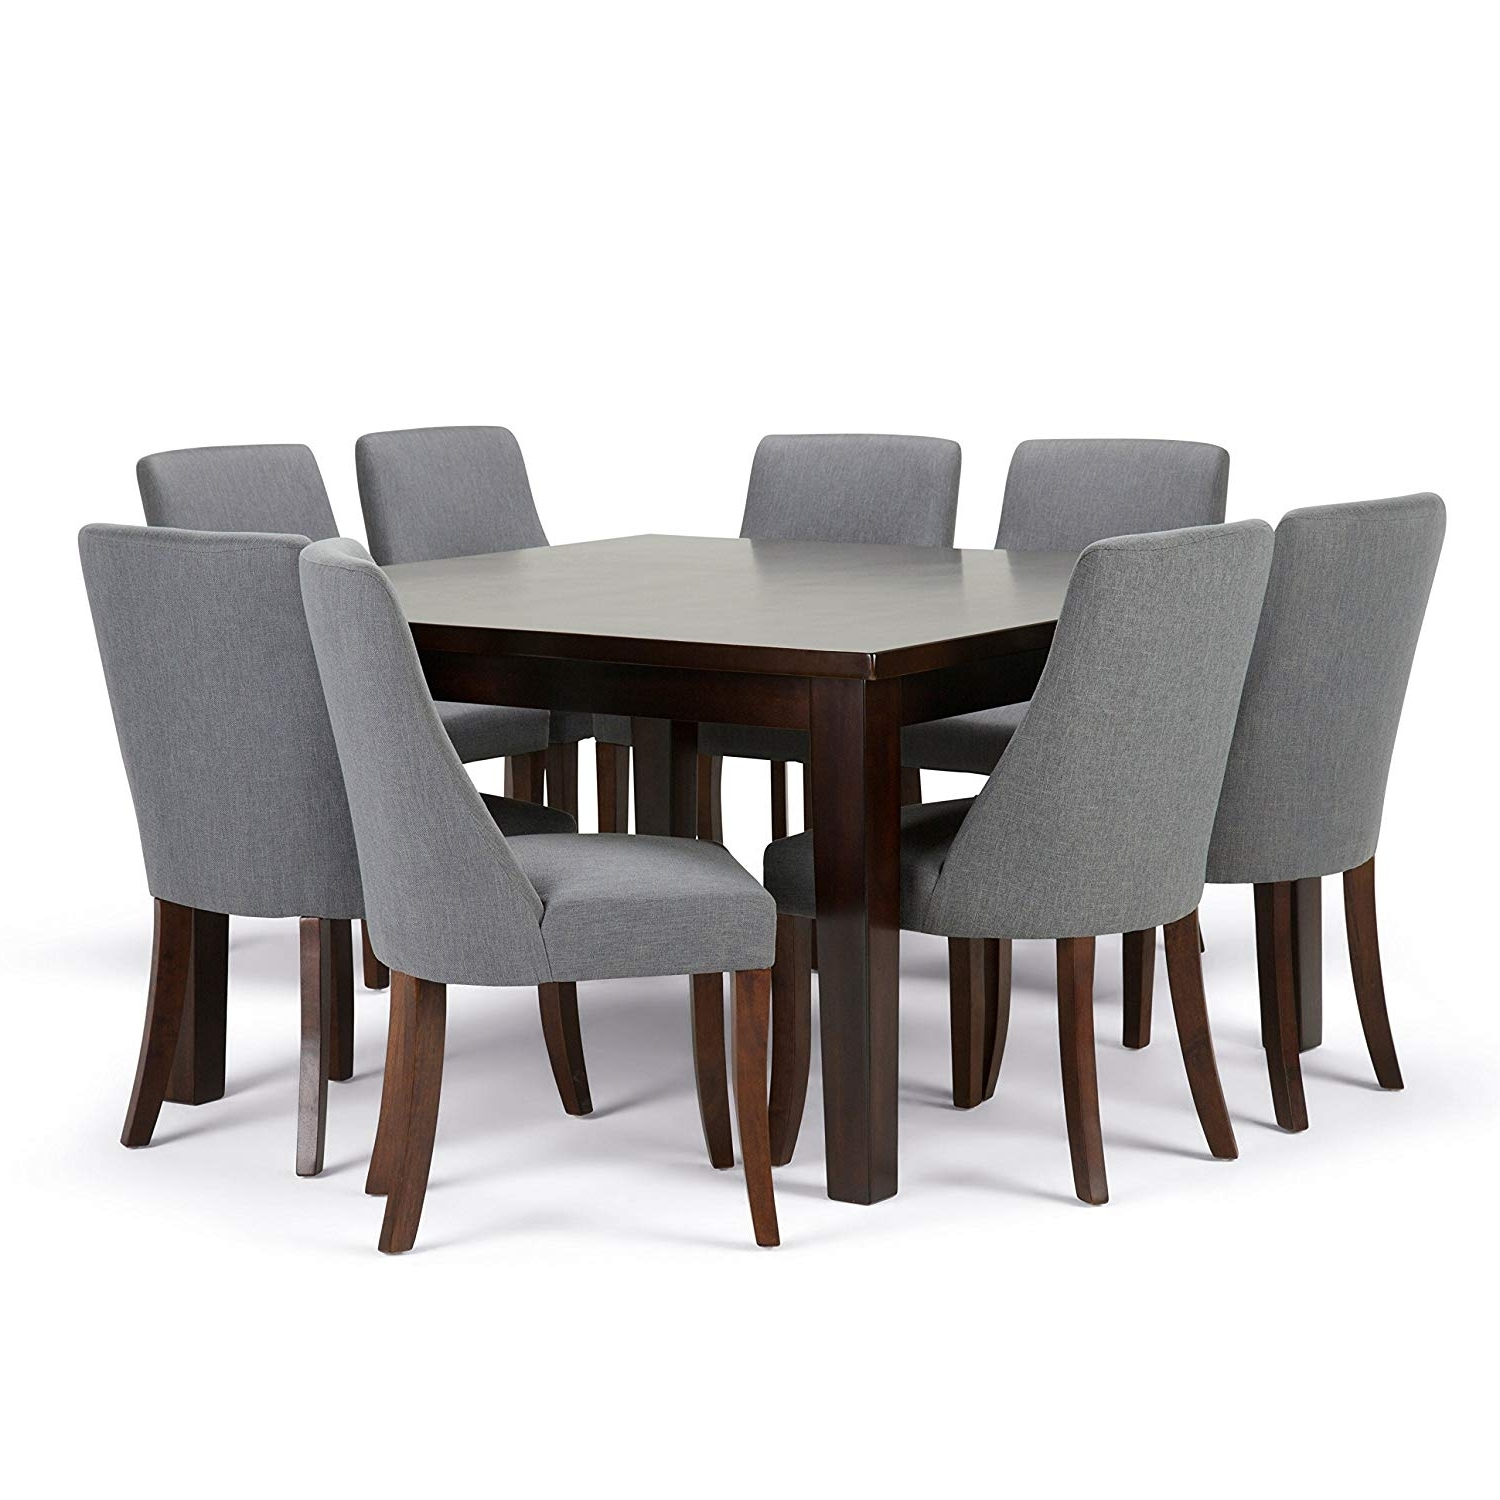 Newest Amazon: Simpli Home Walden 9 Piece Dining Set, Slate Grey Within Walden Extension Dining Tables (View 9 of 25)